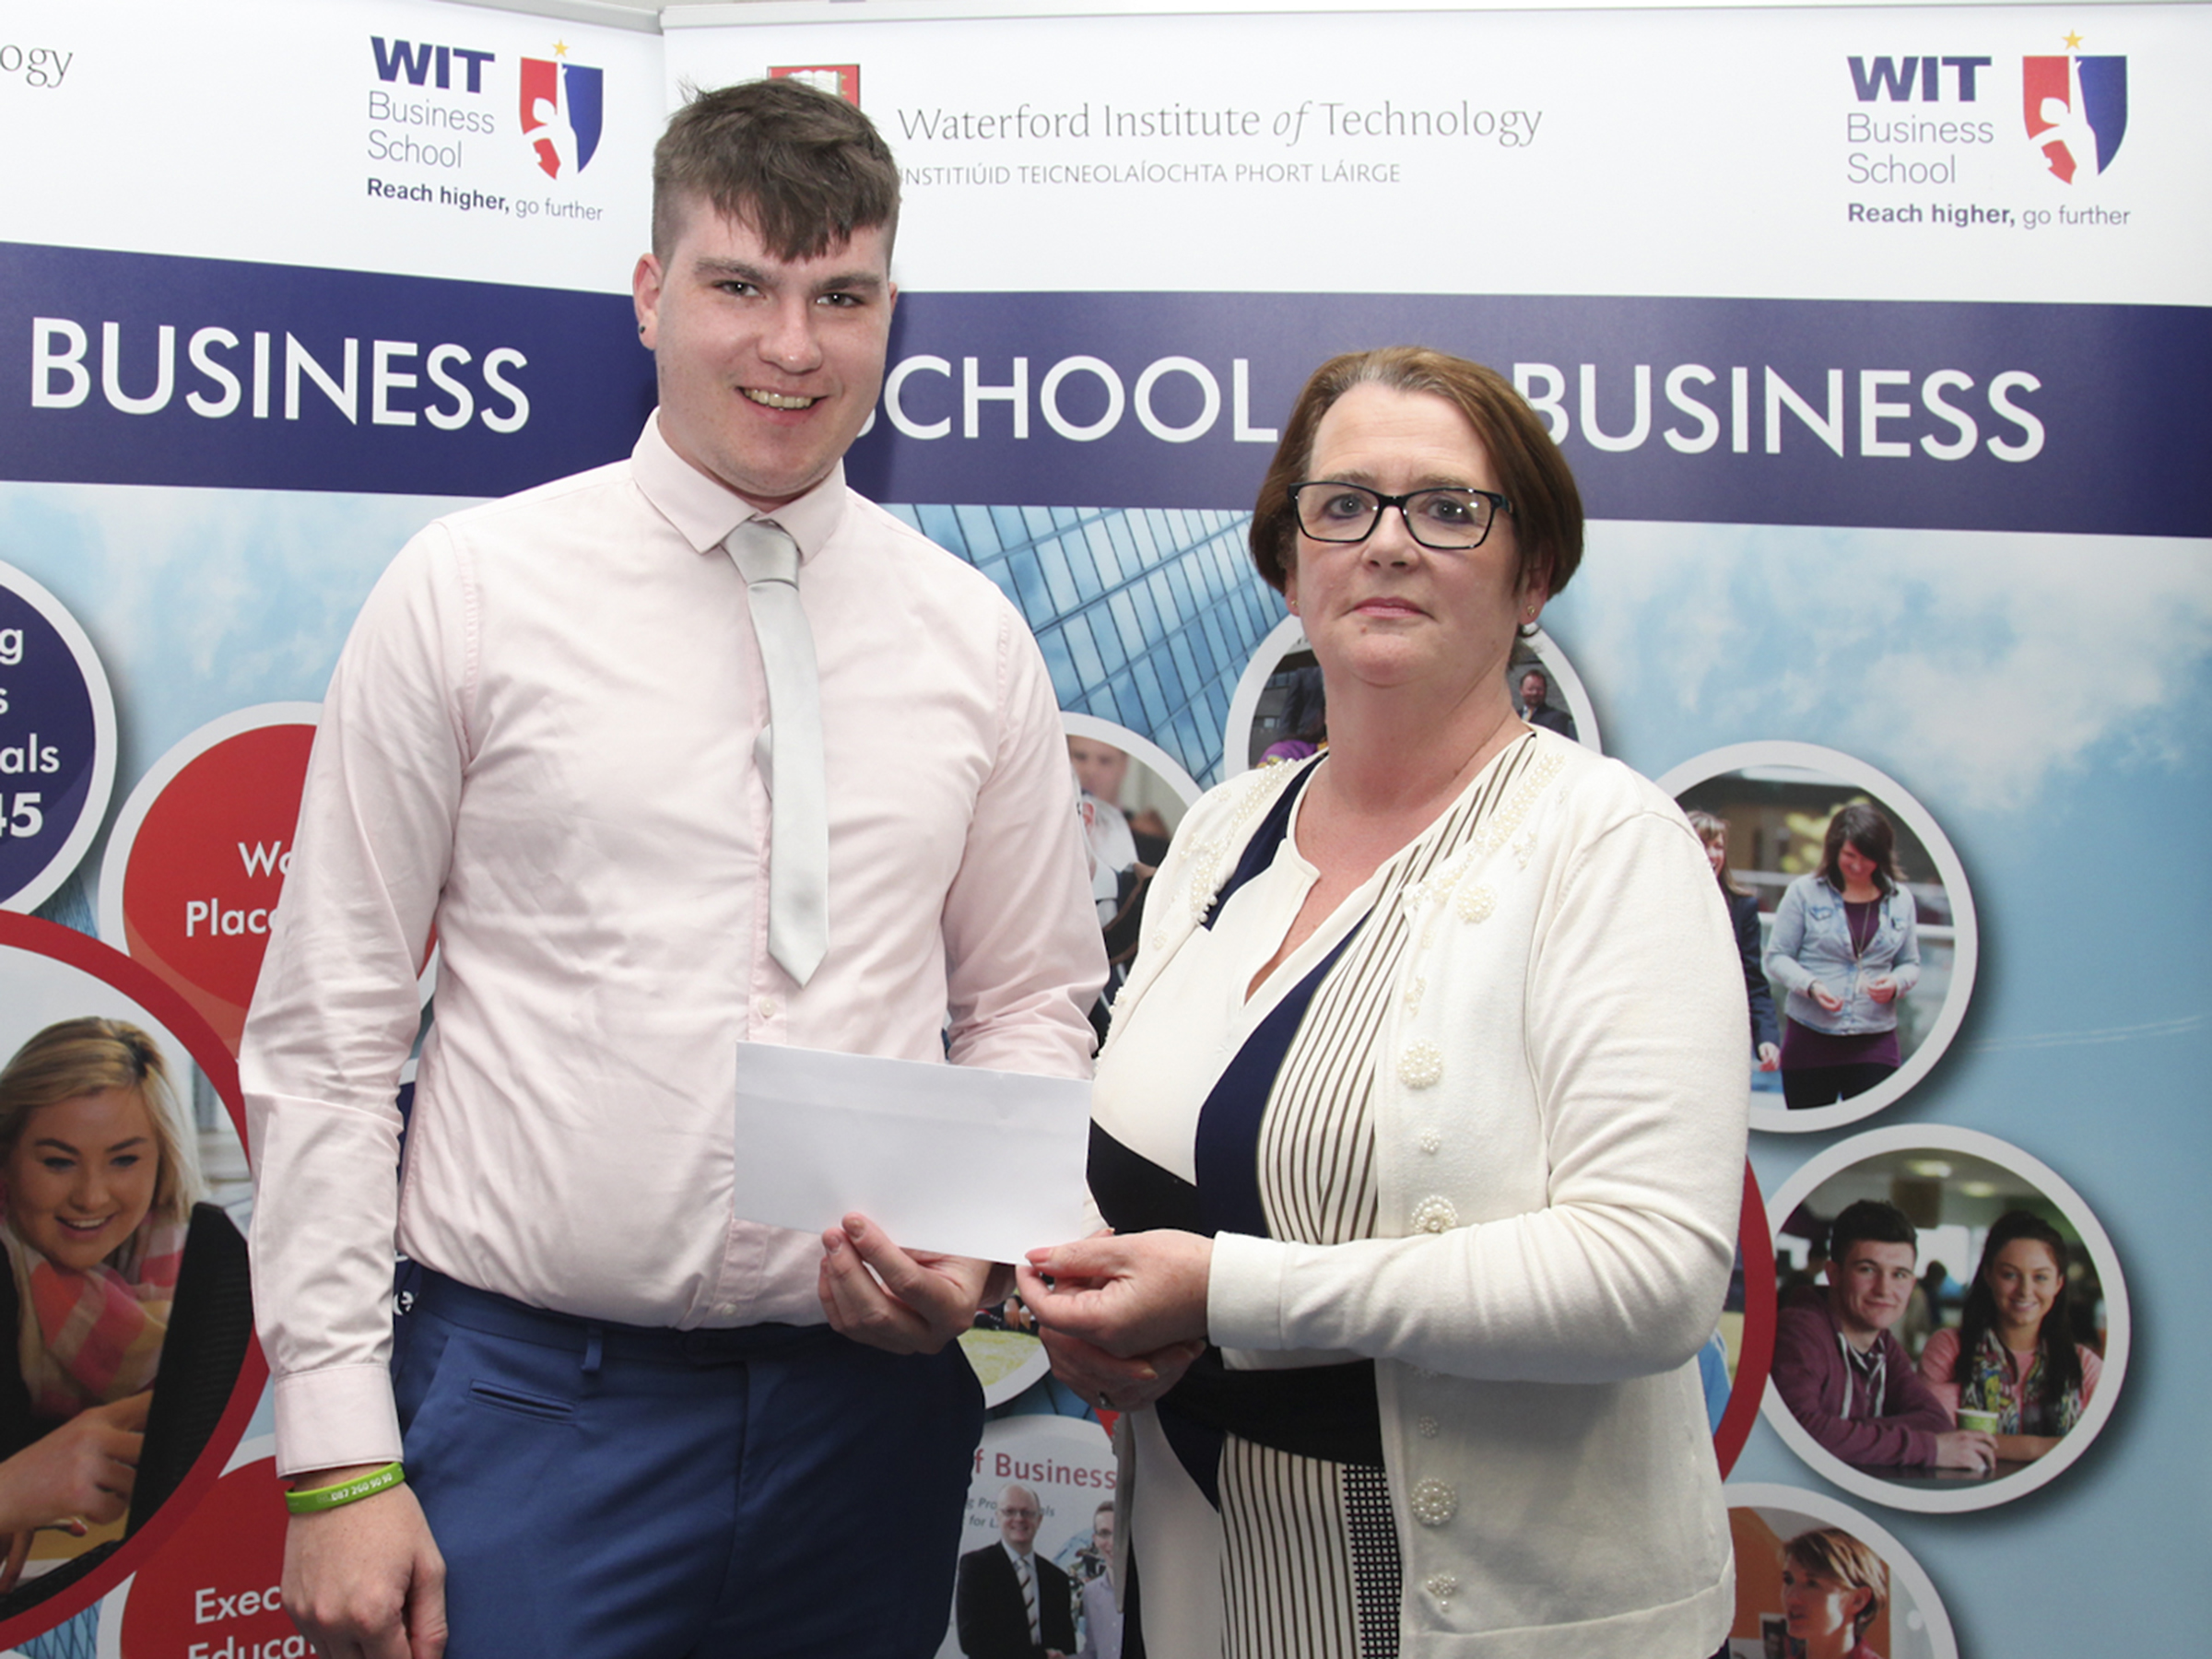 Pictured is the recipient of the John Hume Combined Credit Union Scholarship, Mr Sean Walsh. Linda O Kane presented the Scholarship on behalf of the Combined Credit Unions